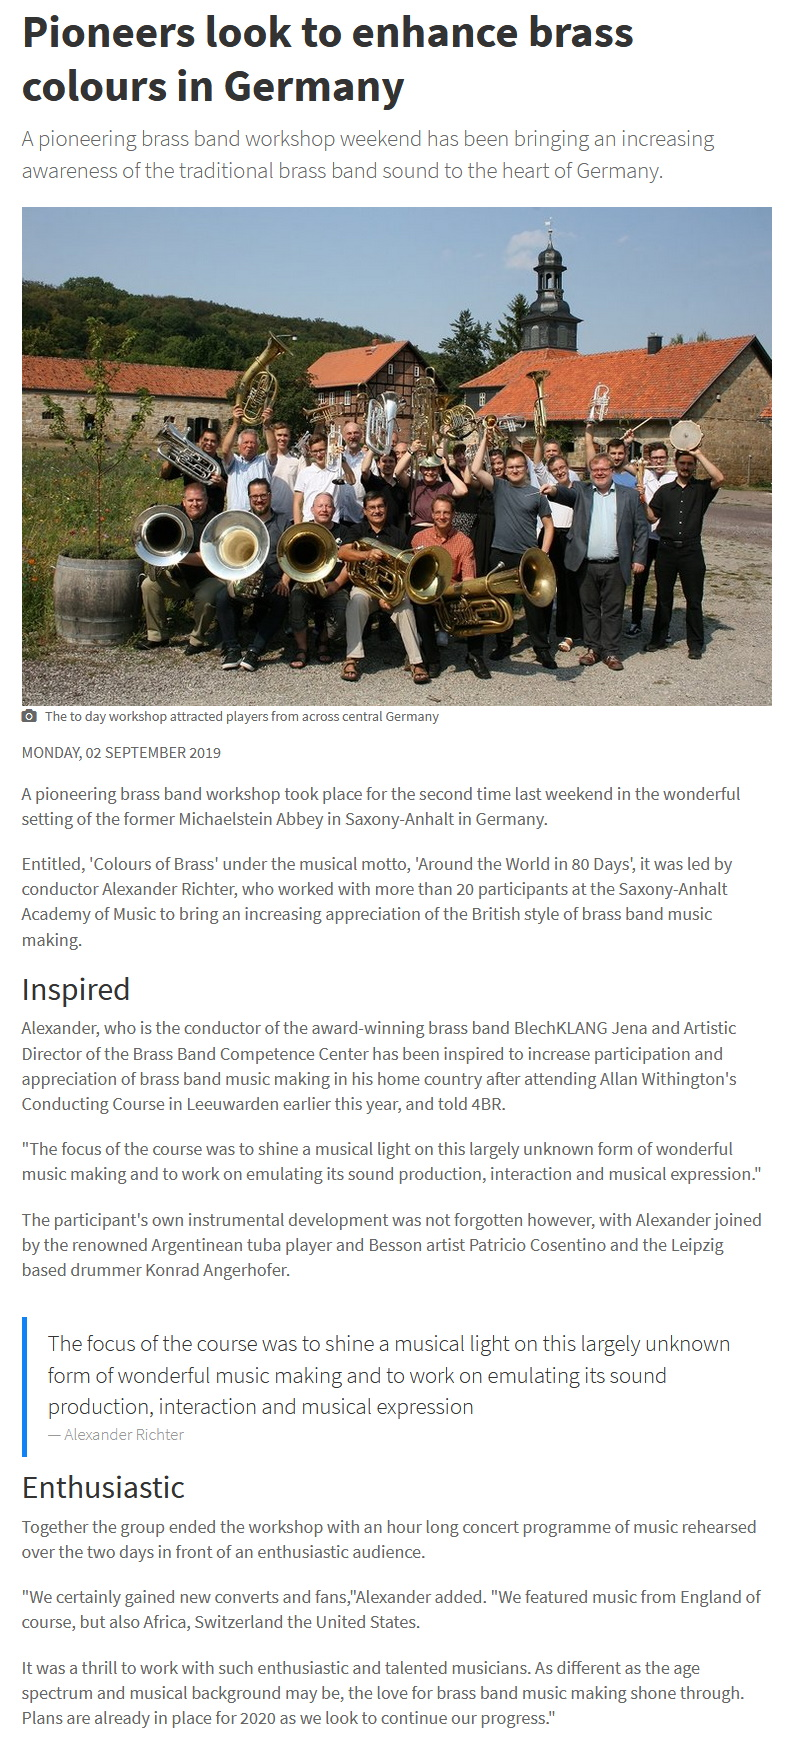 Artikel 4barsrest Brass Band Workshop Kloster Michaelstein Alexander Richter Patricio Cosentino